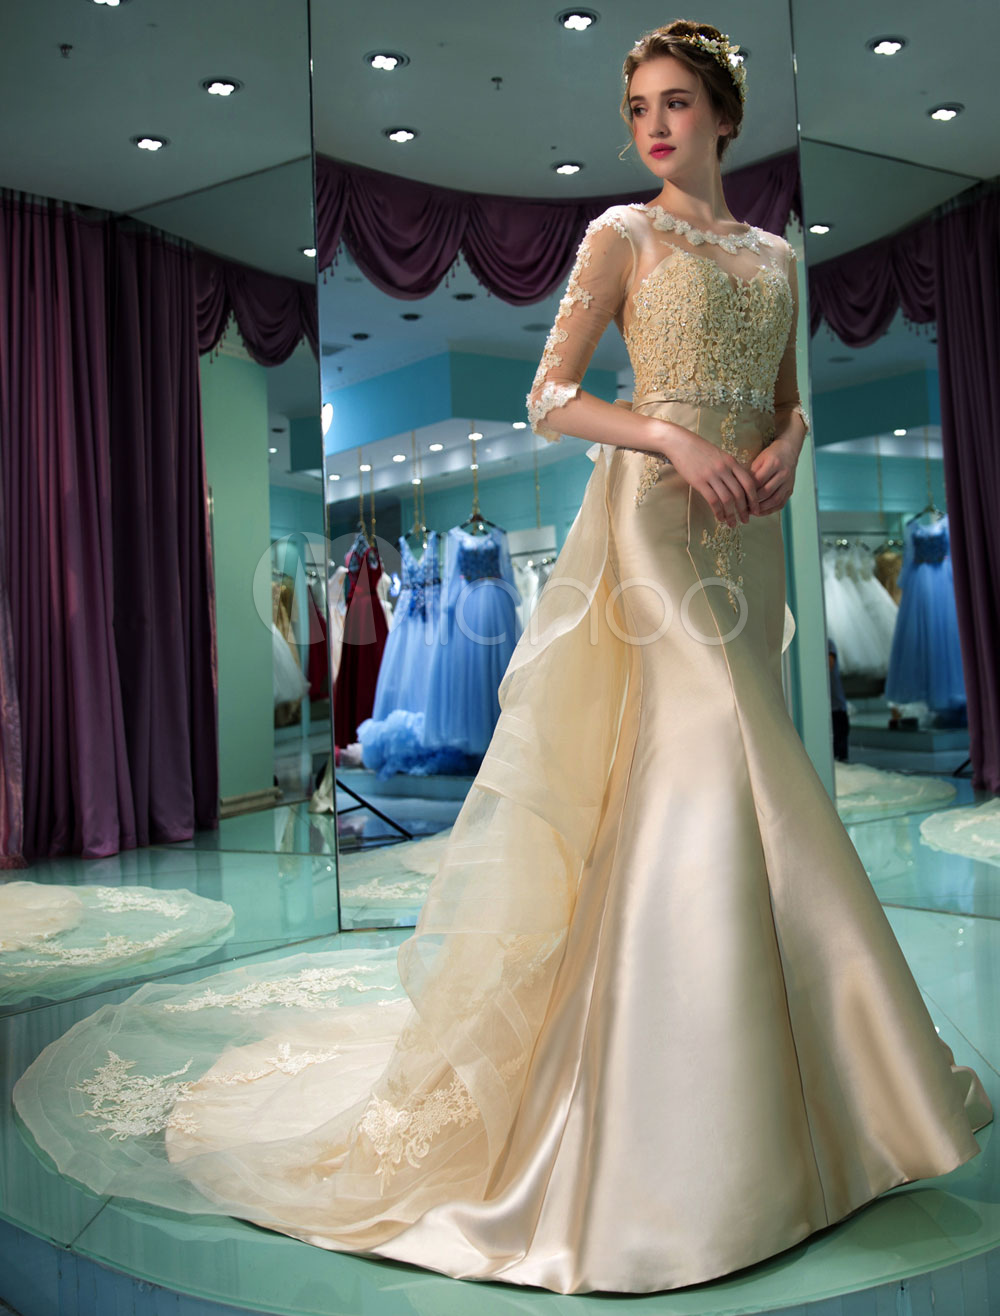 Champagne Wedding Dress Mermaid Half Sleeve Satin Bridal Dress Illusion Lace Beaded Sash Wedding Gown With Train